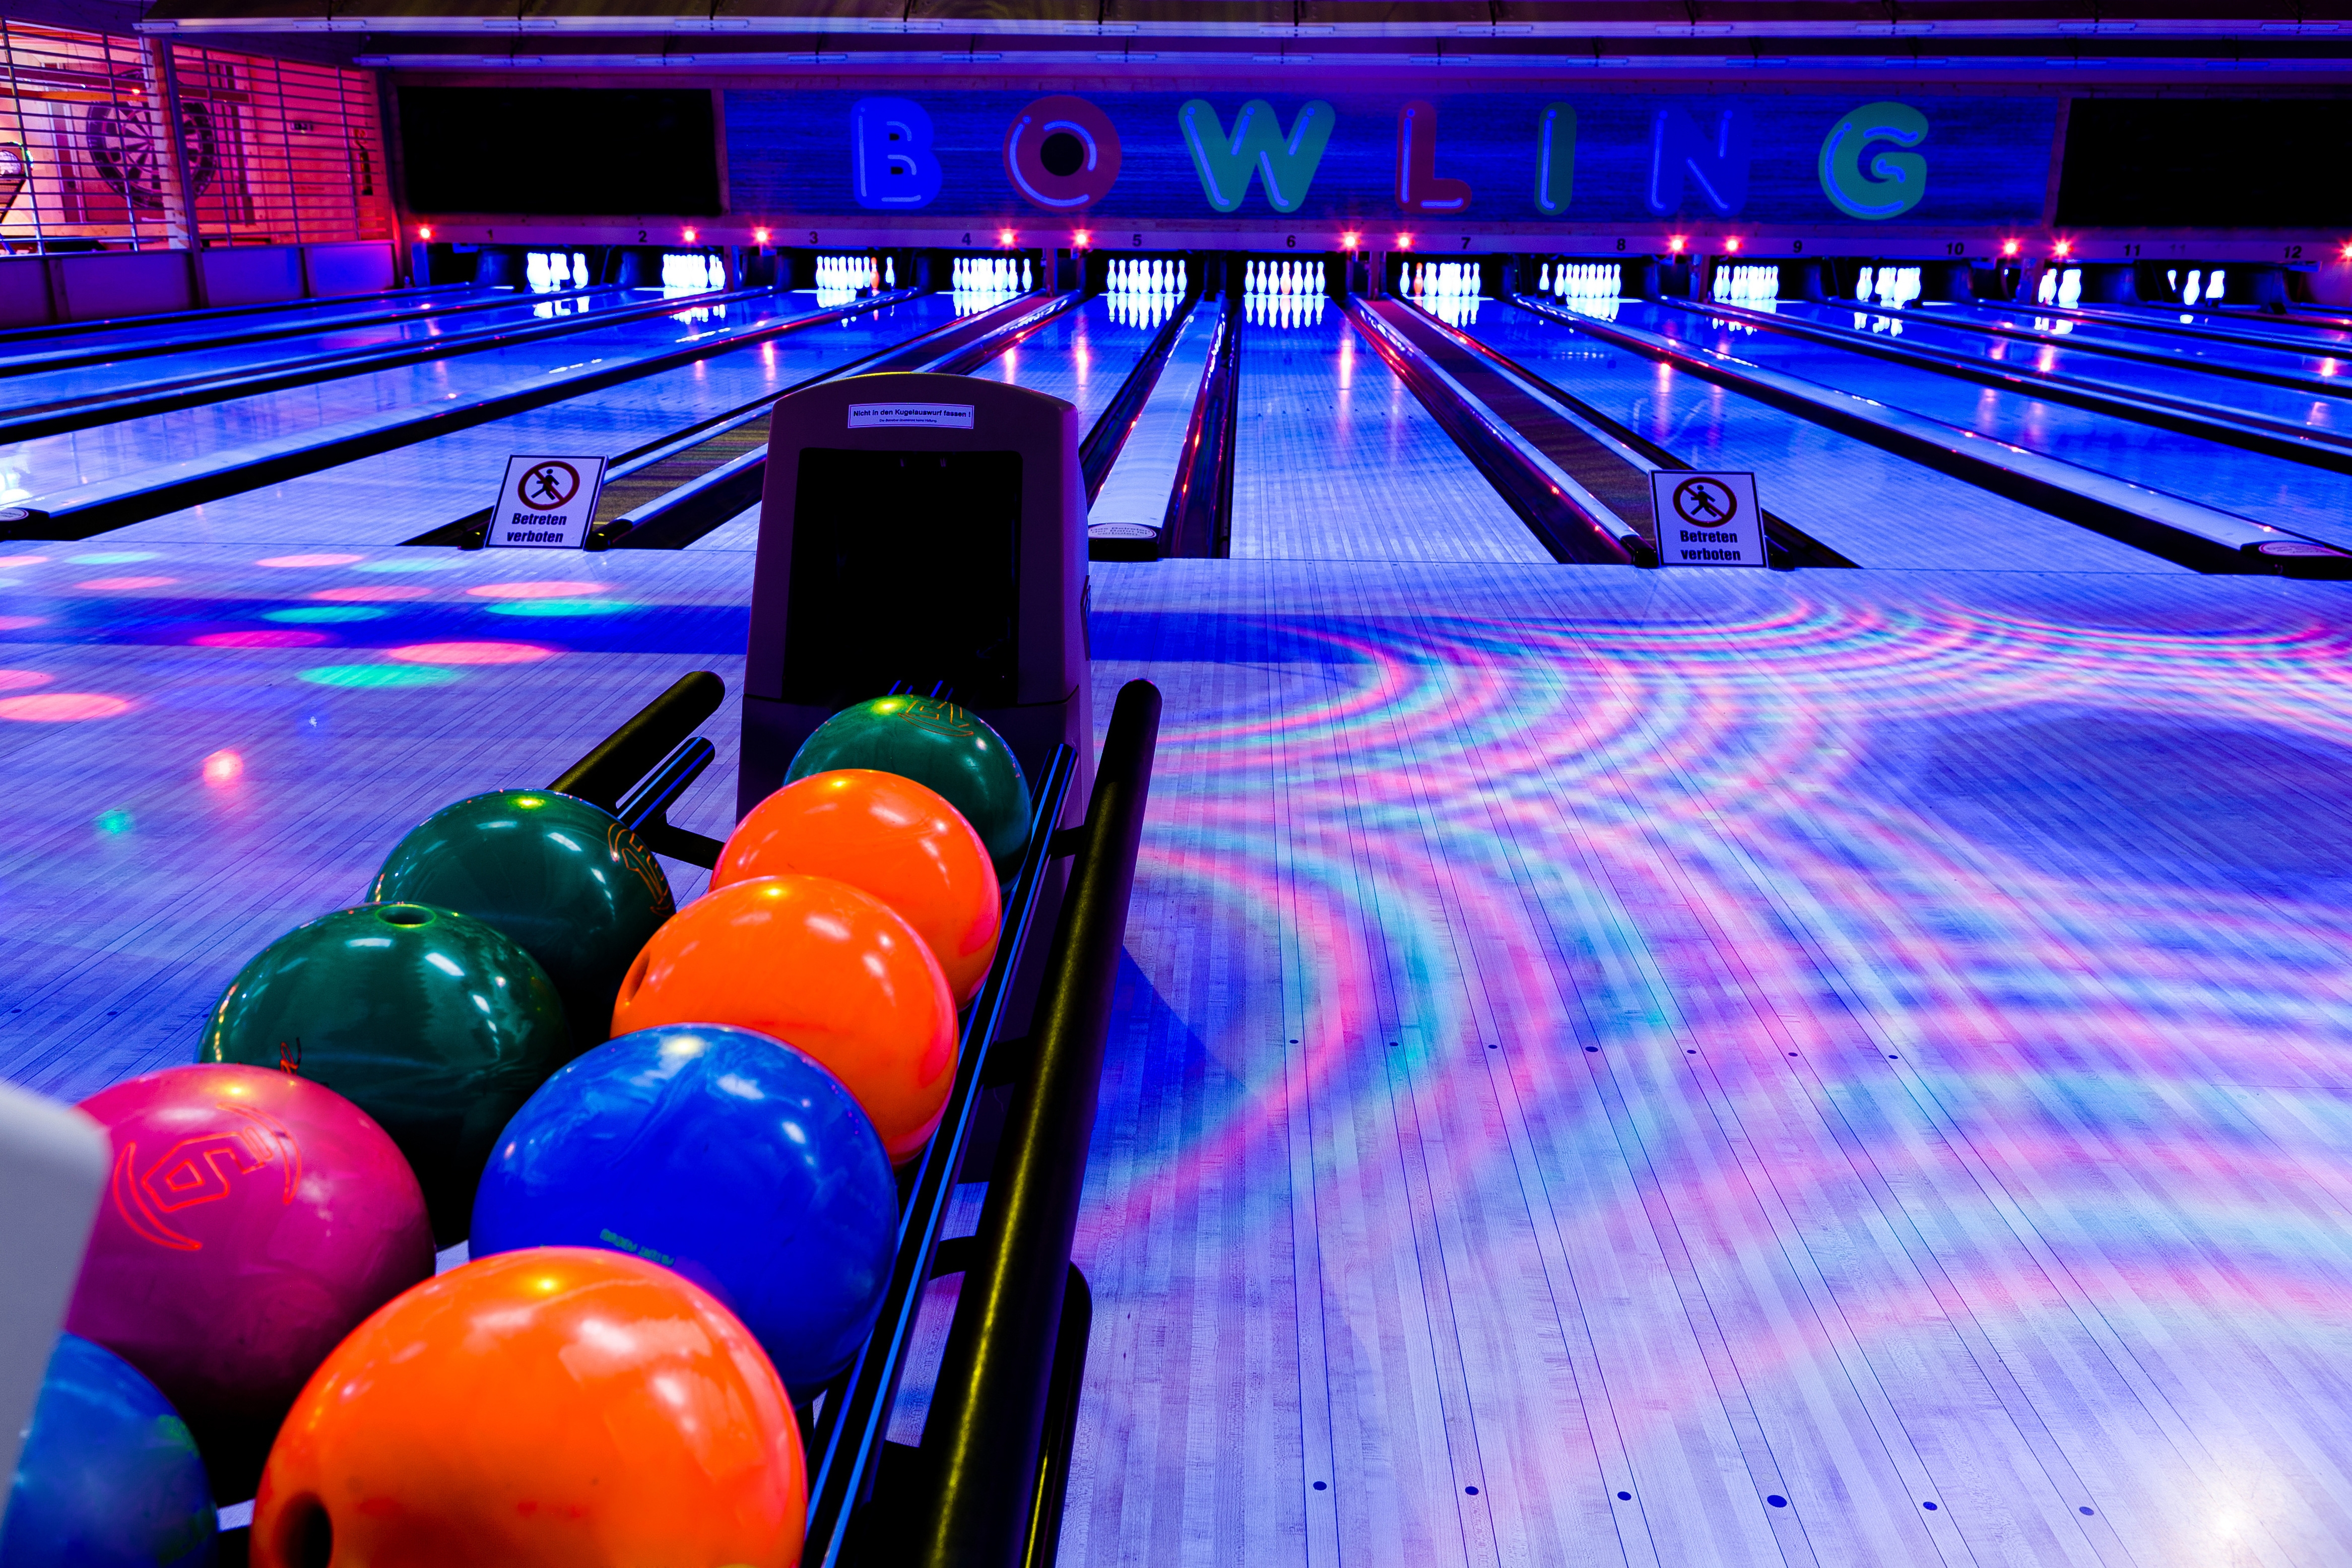 bowling wallpapers images photos pictures backgrounds Free Clip Art Bowling Lane free clipart images bowling pin